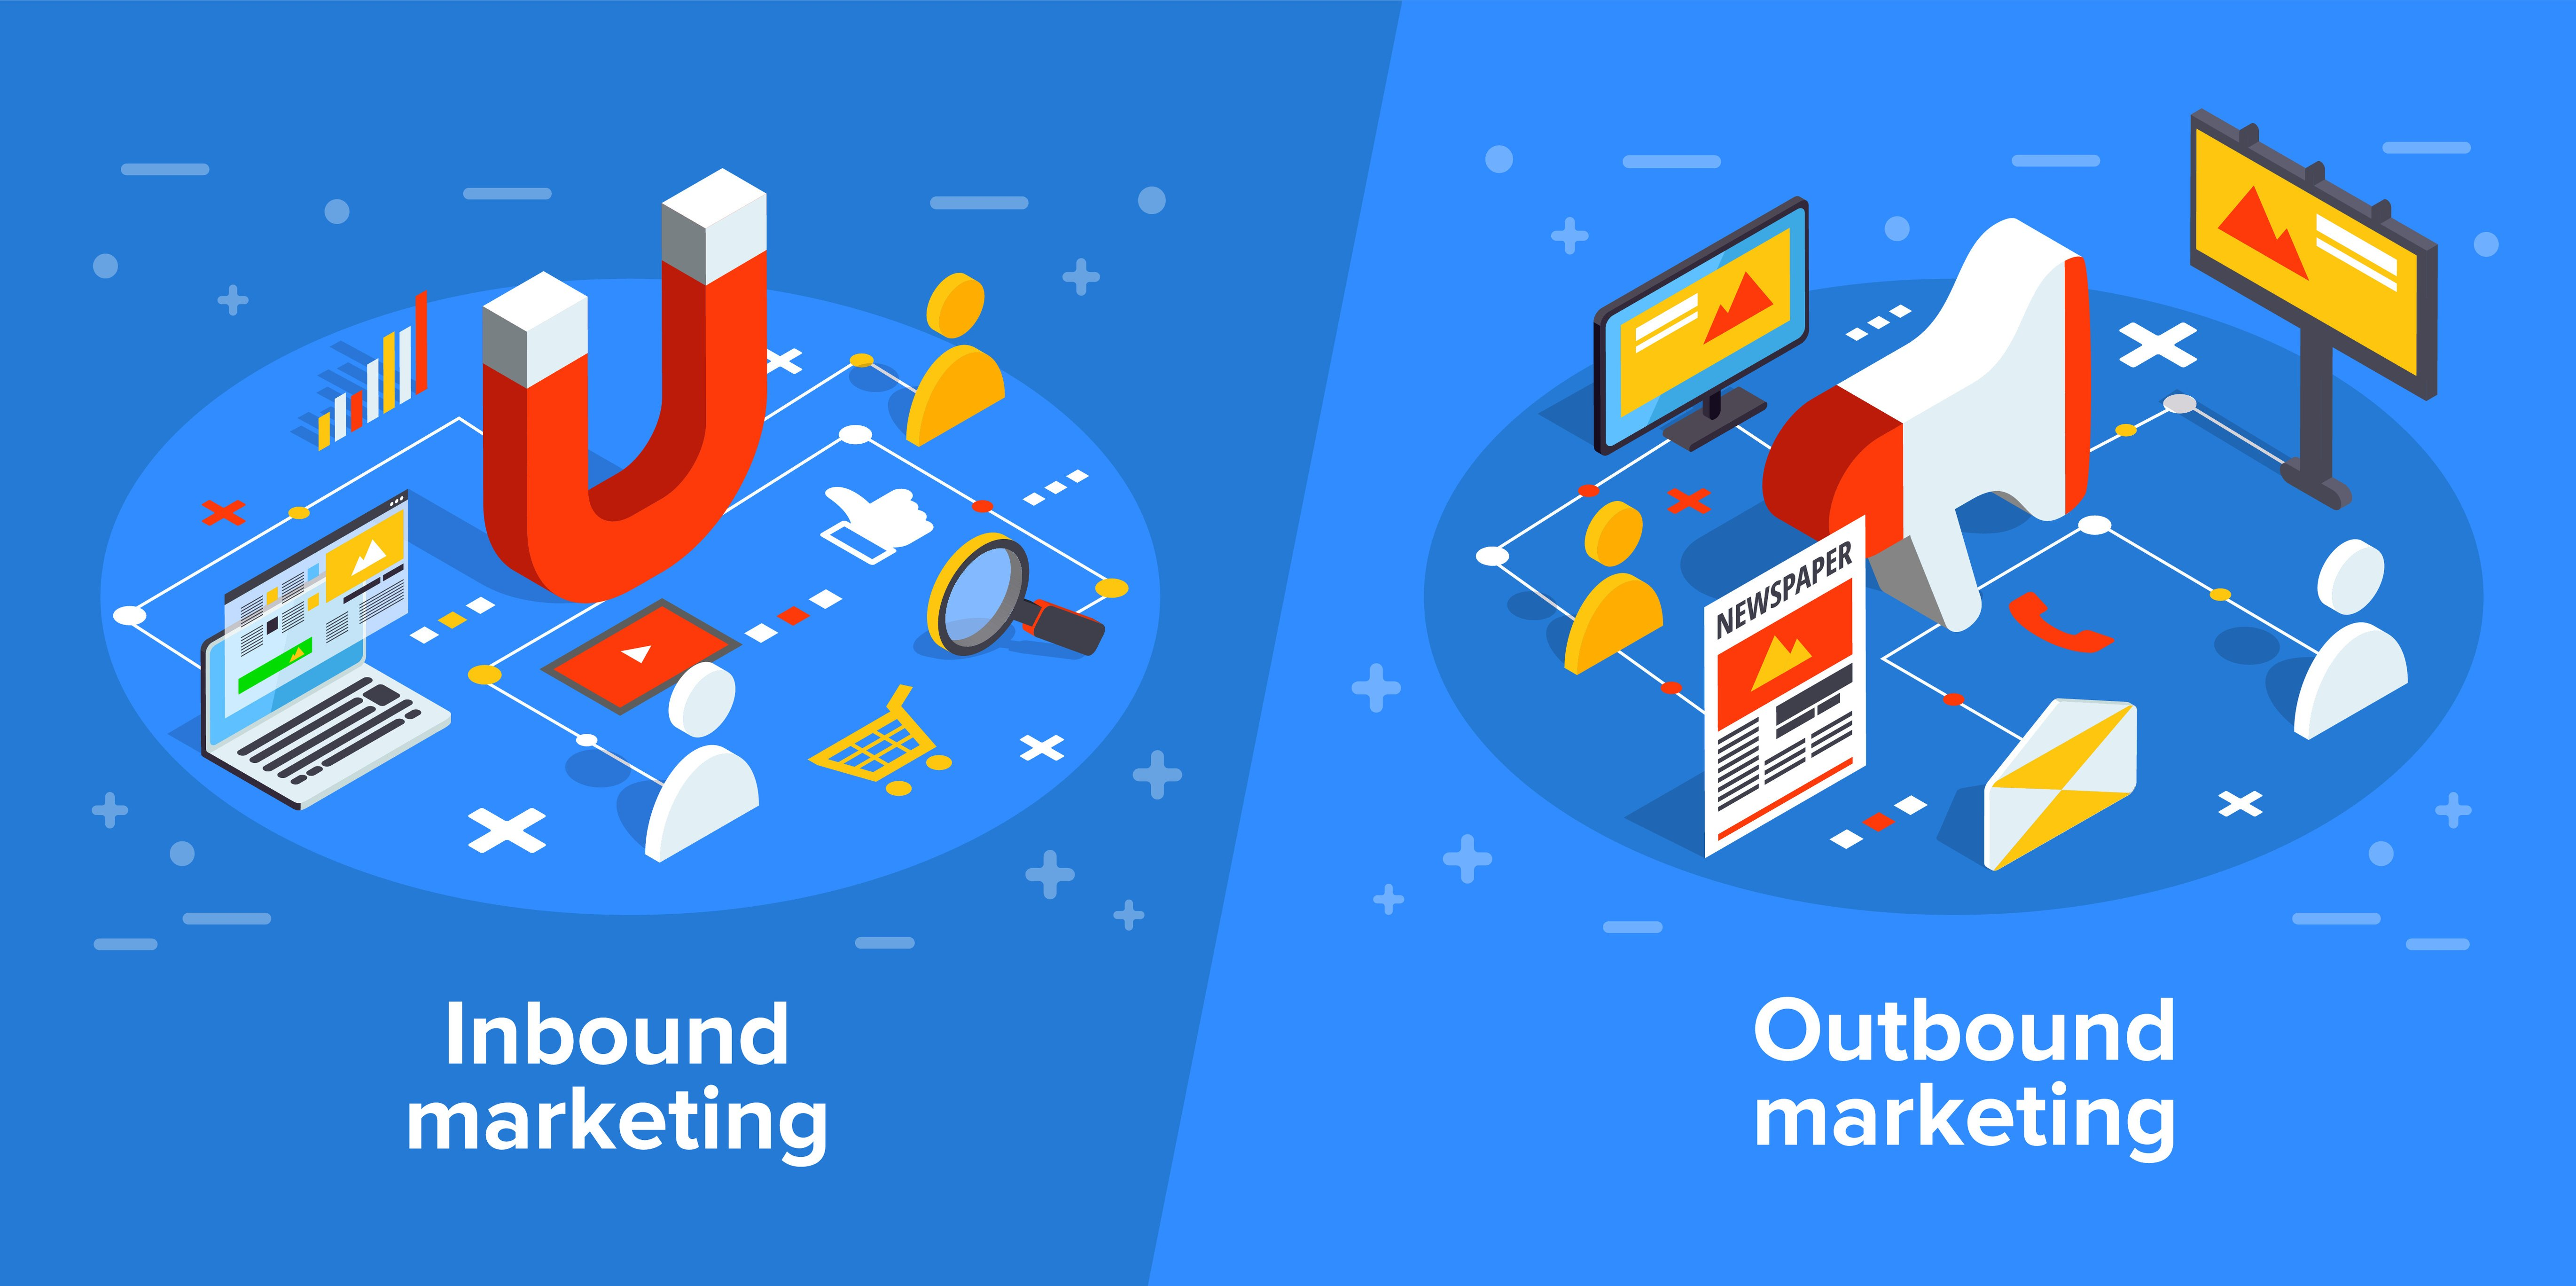 Inbound vs. Outbound Marketing - Which is More Effective